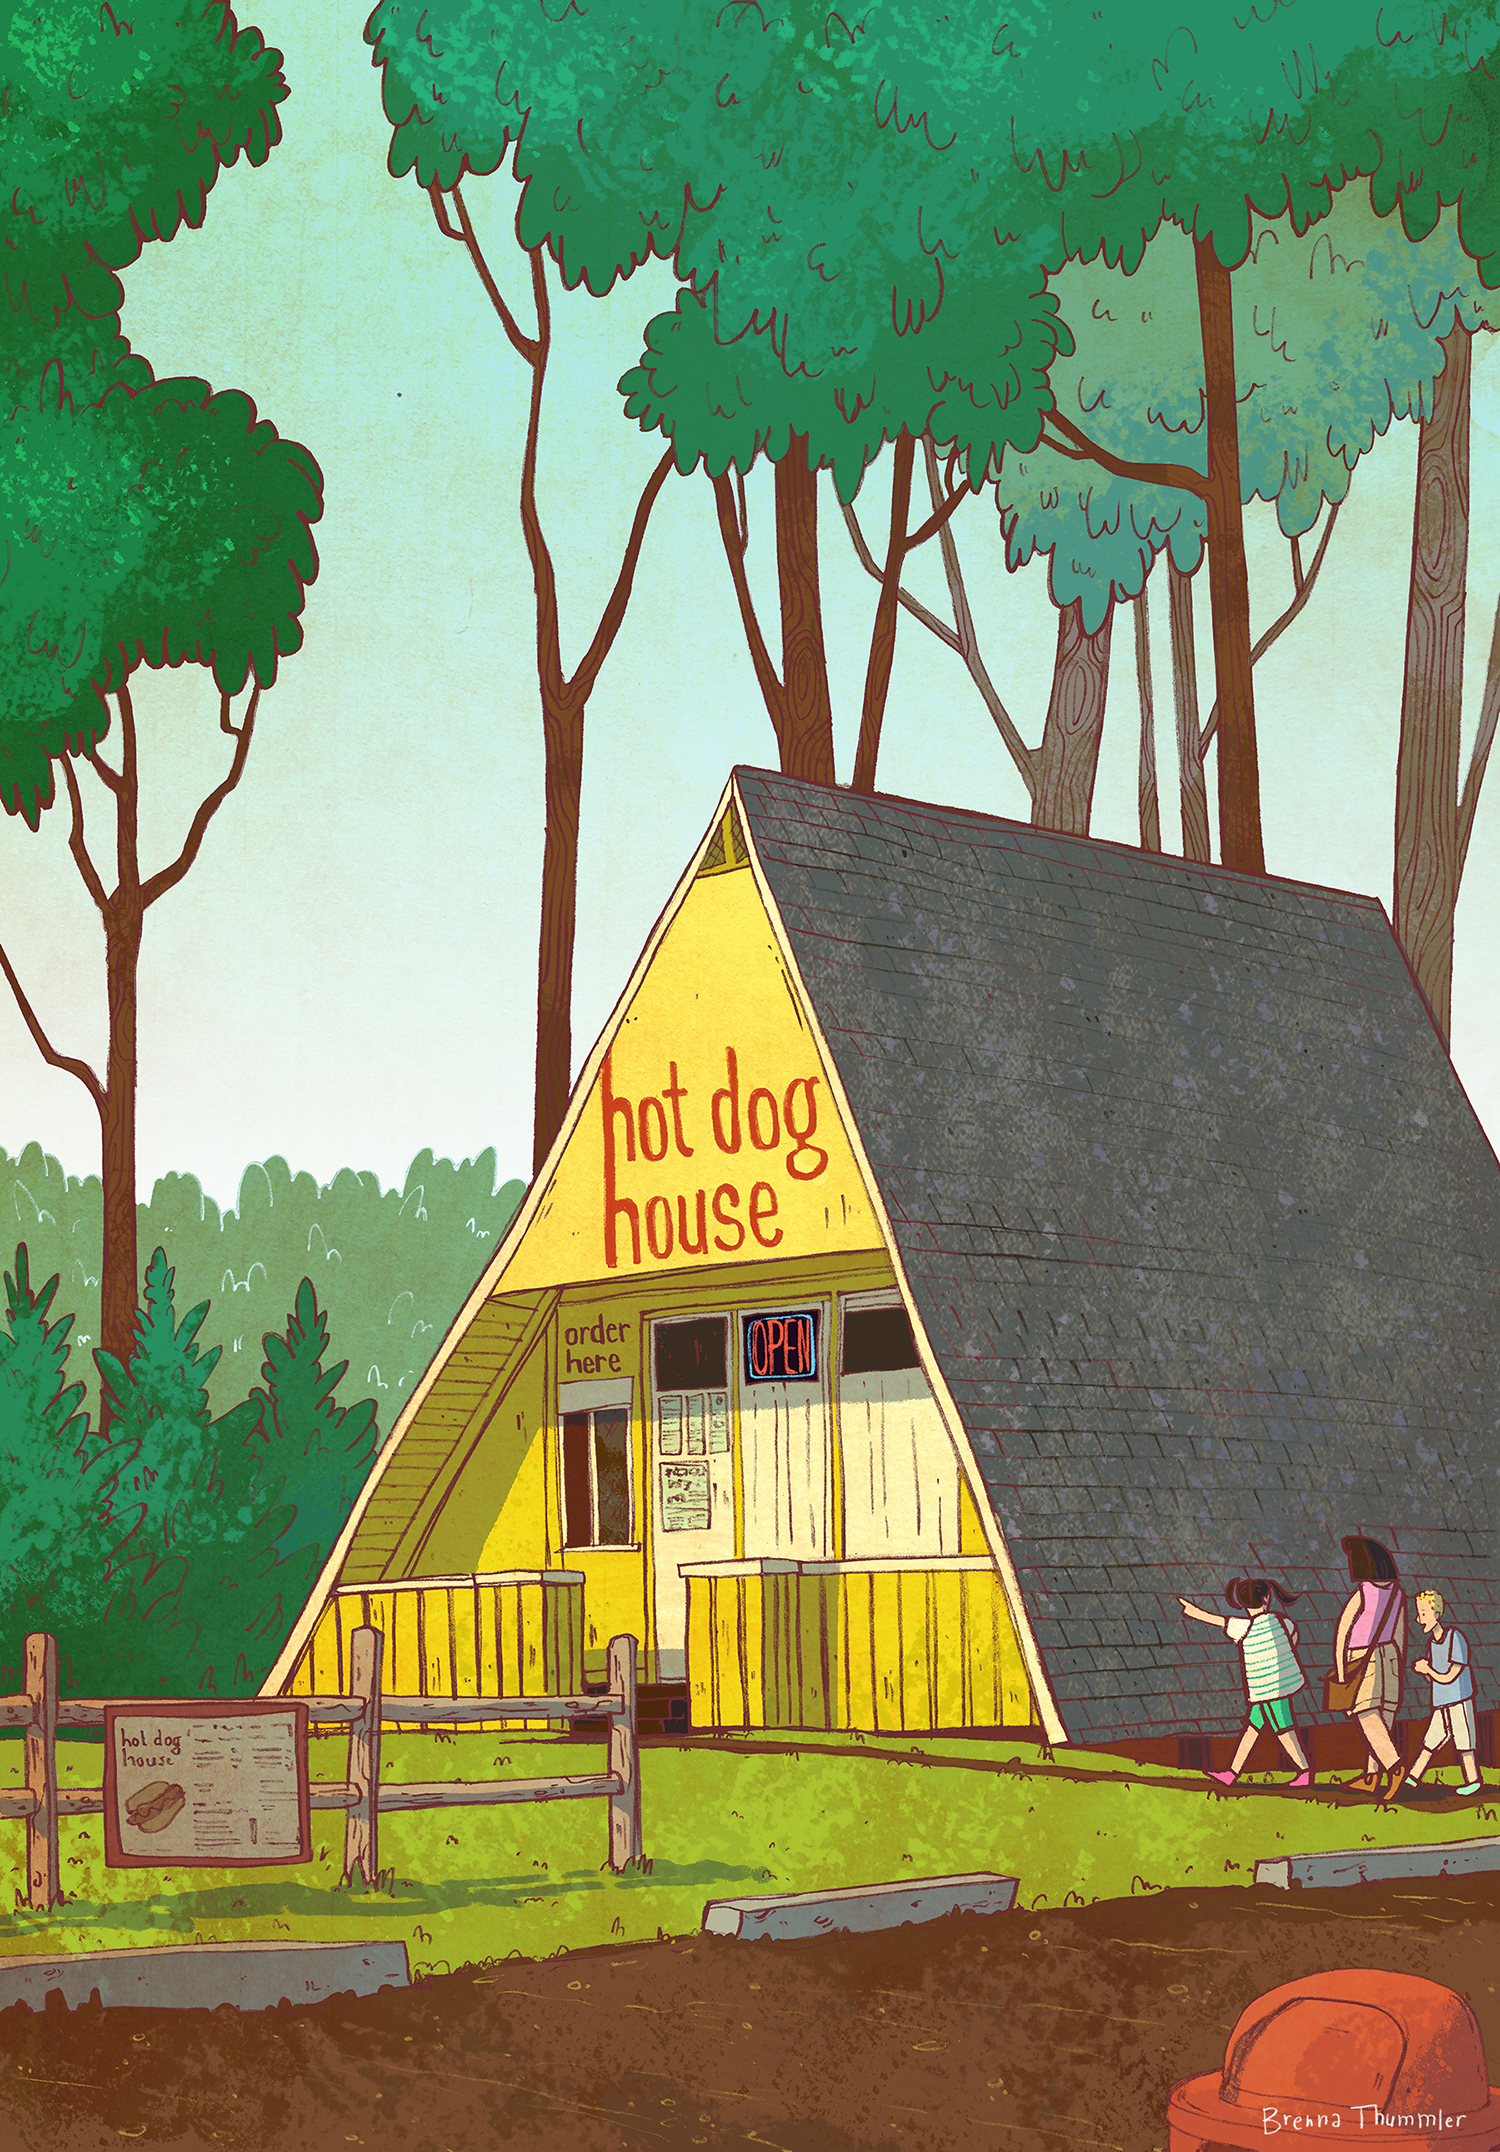 The Hotdog House